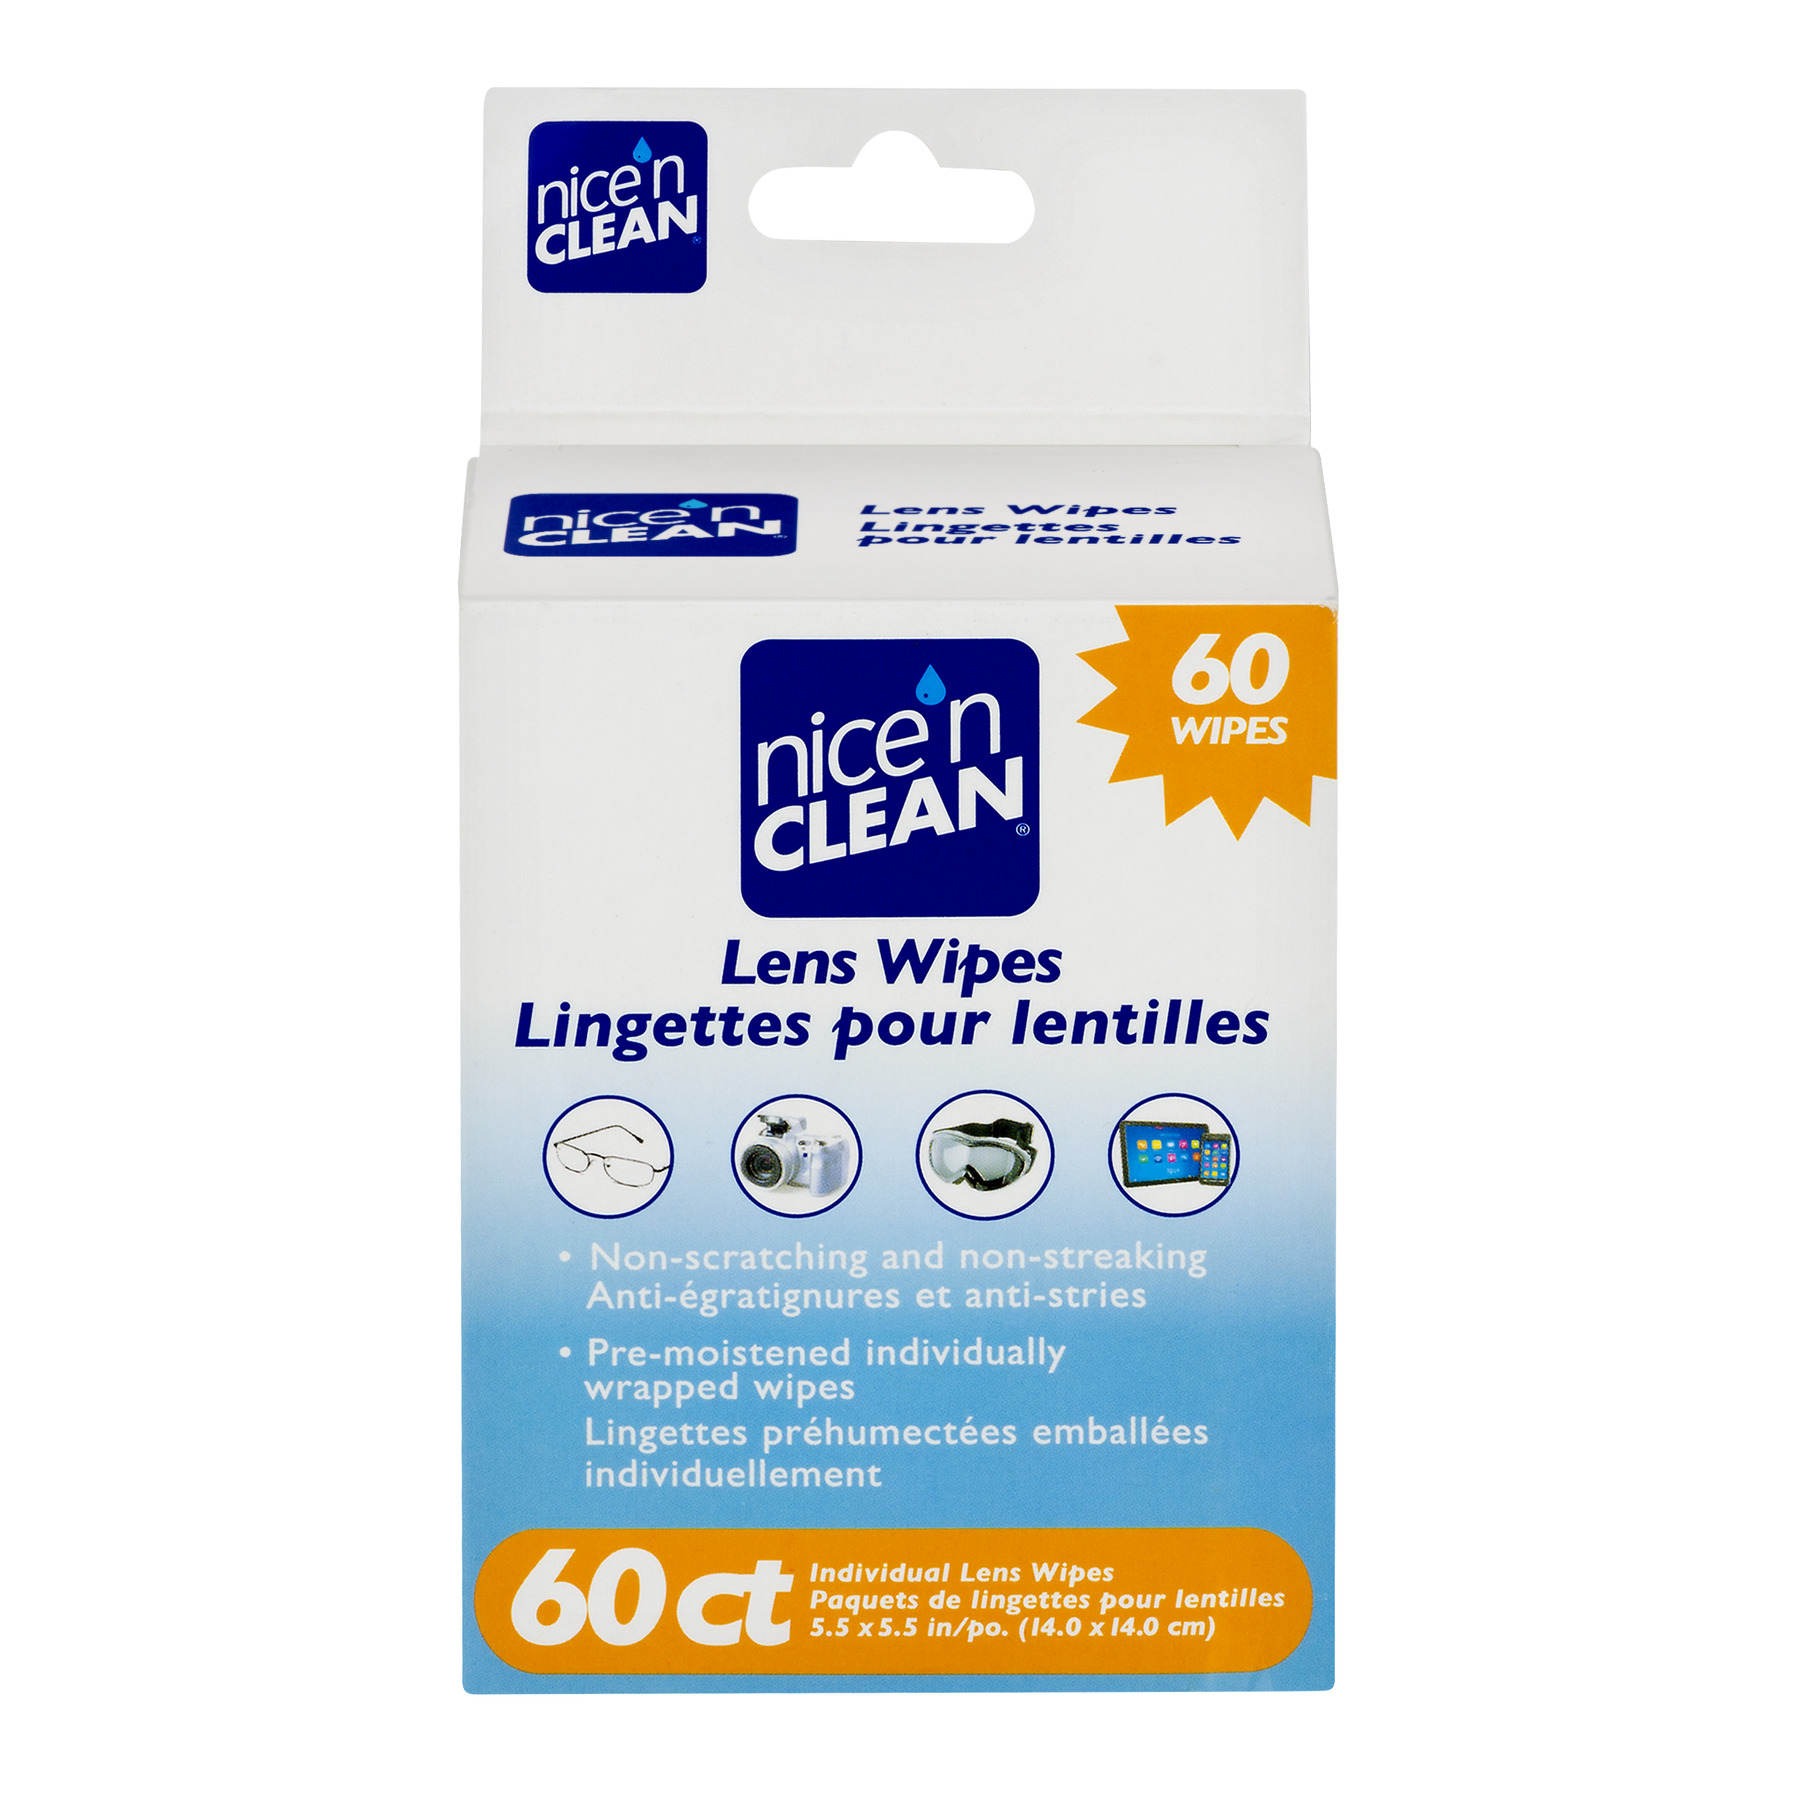 Nice 'n CLEAN® Lens Wipes, 60CT